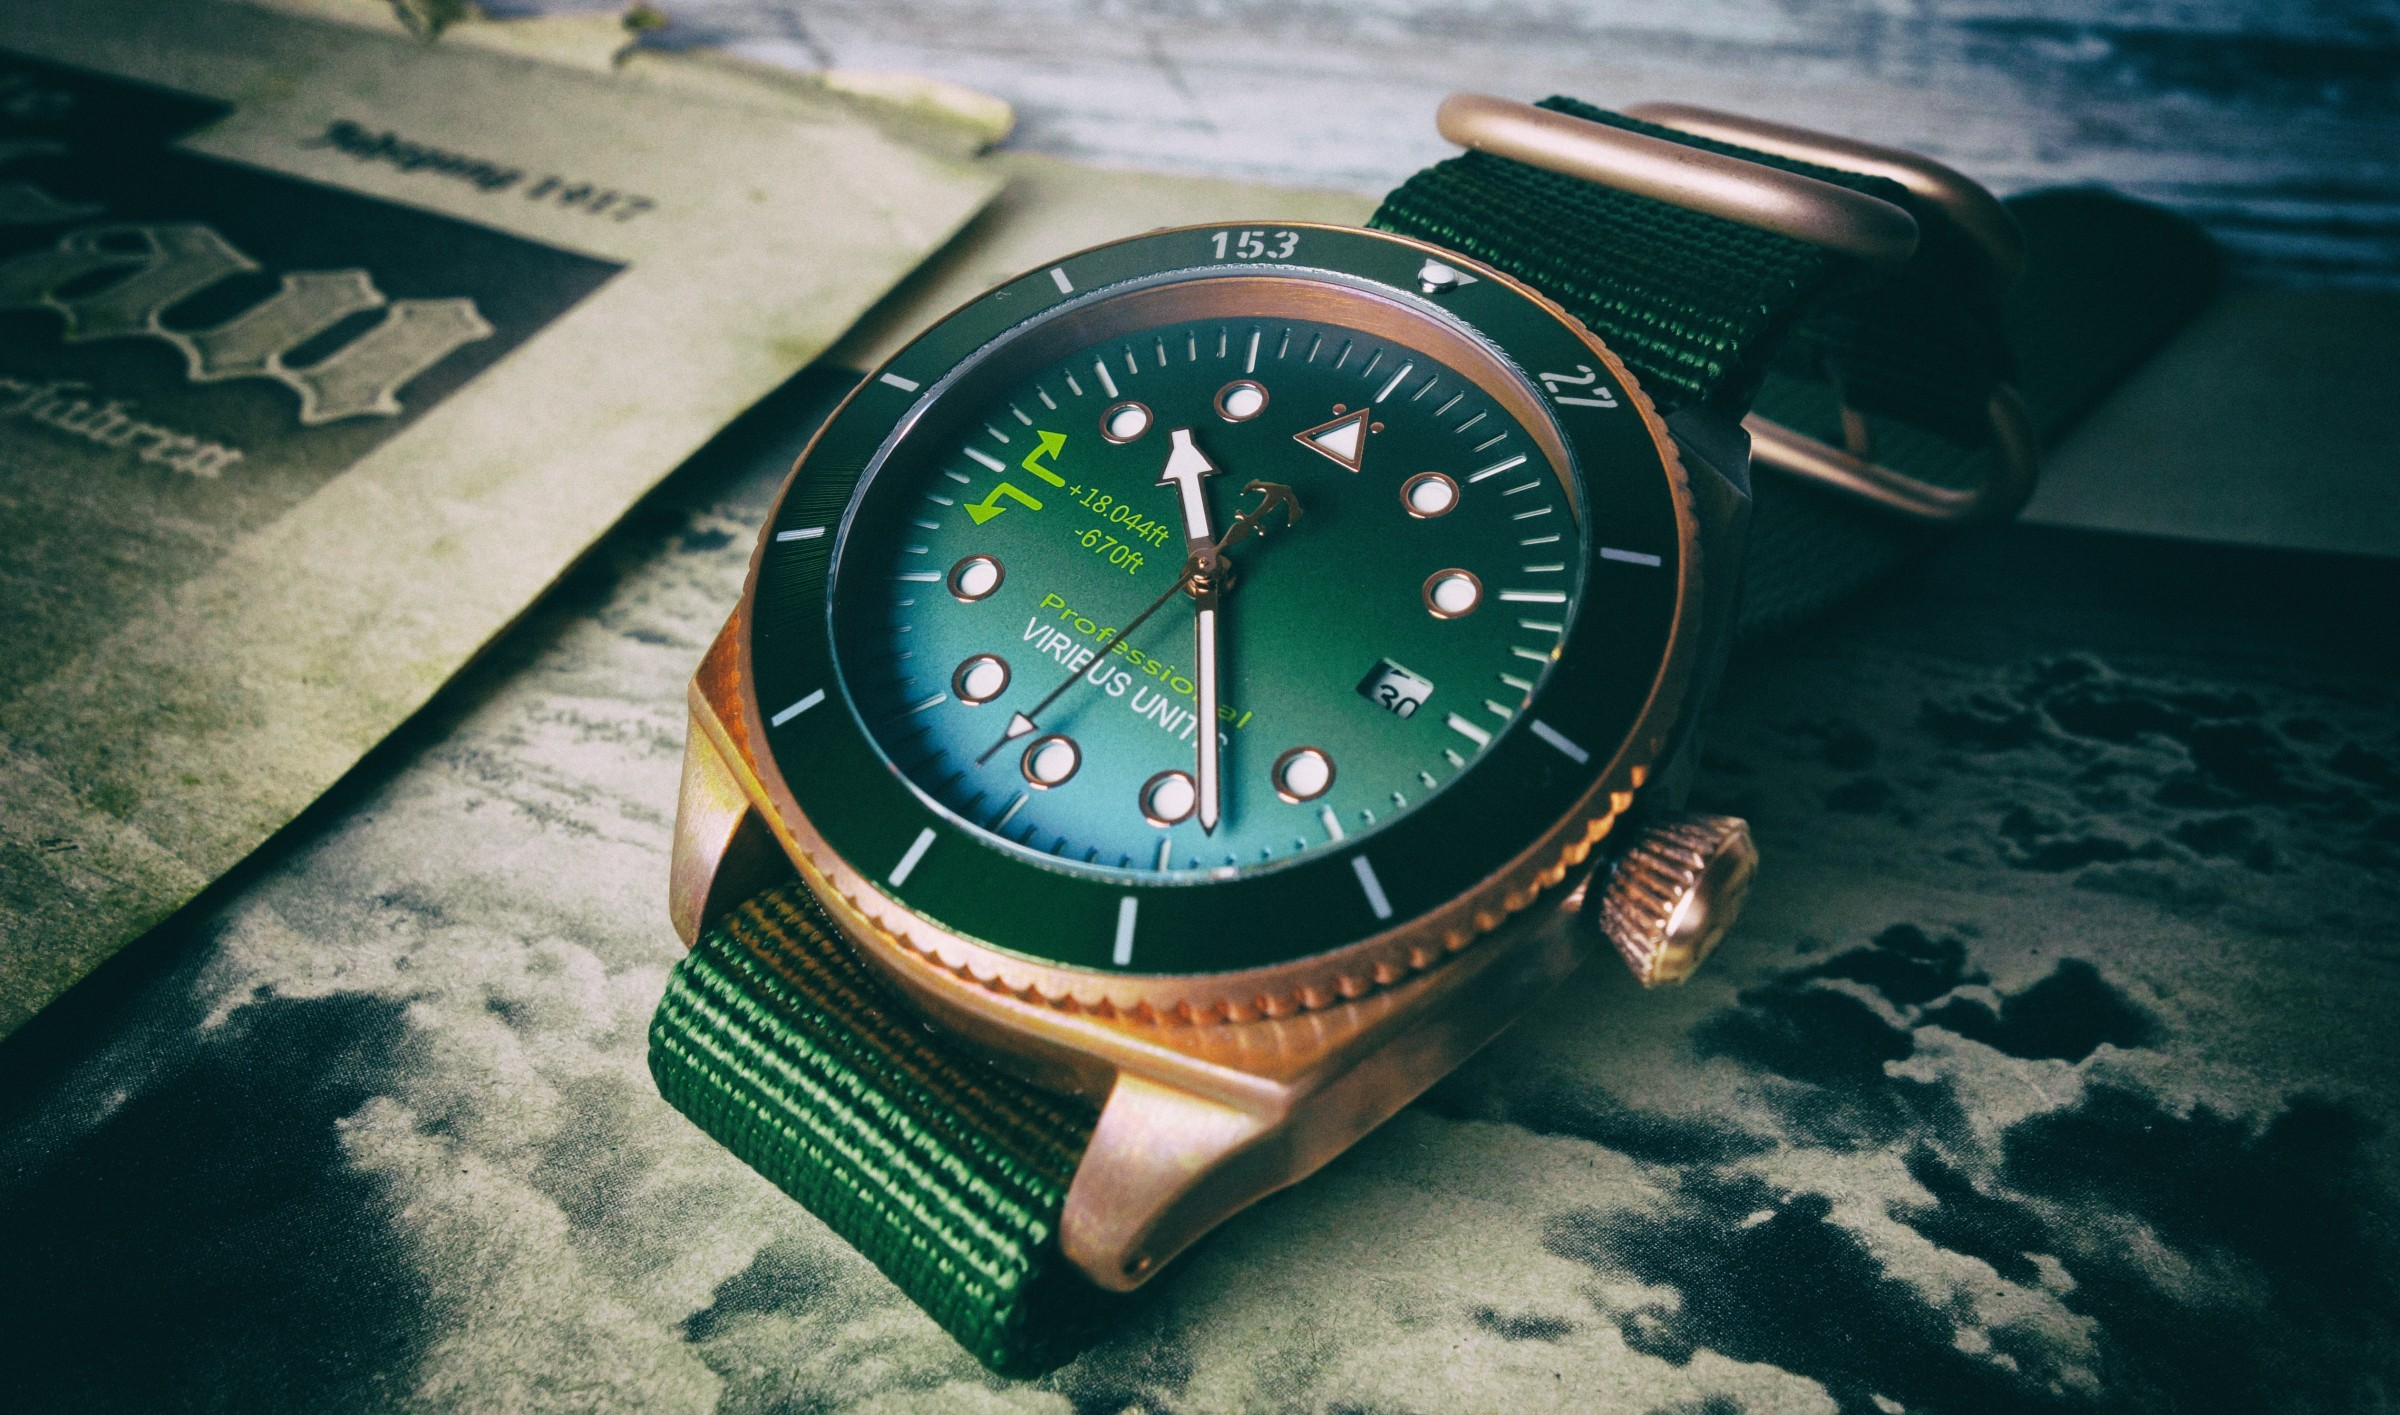 Wristwatch Review: Men's Fossil Decker Vintage Bronze Watch